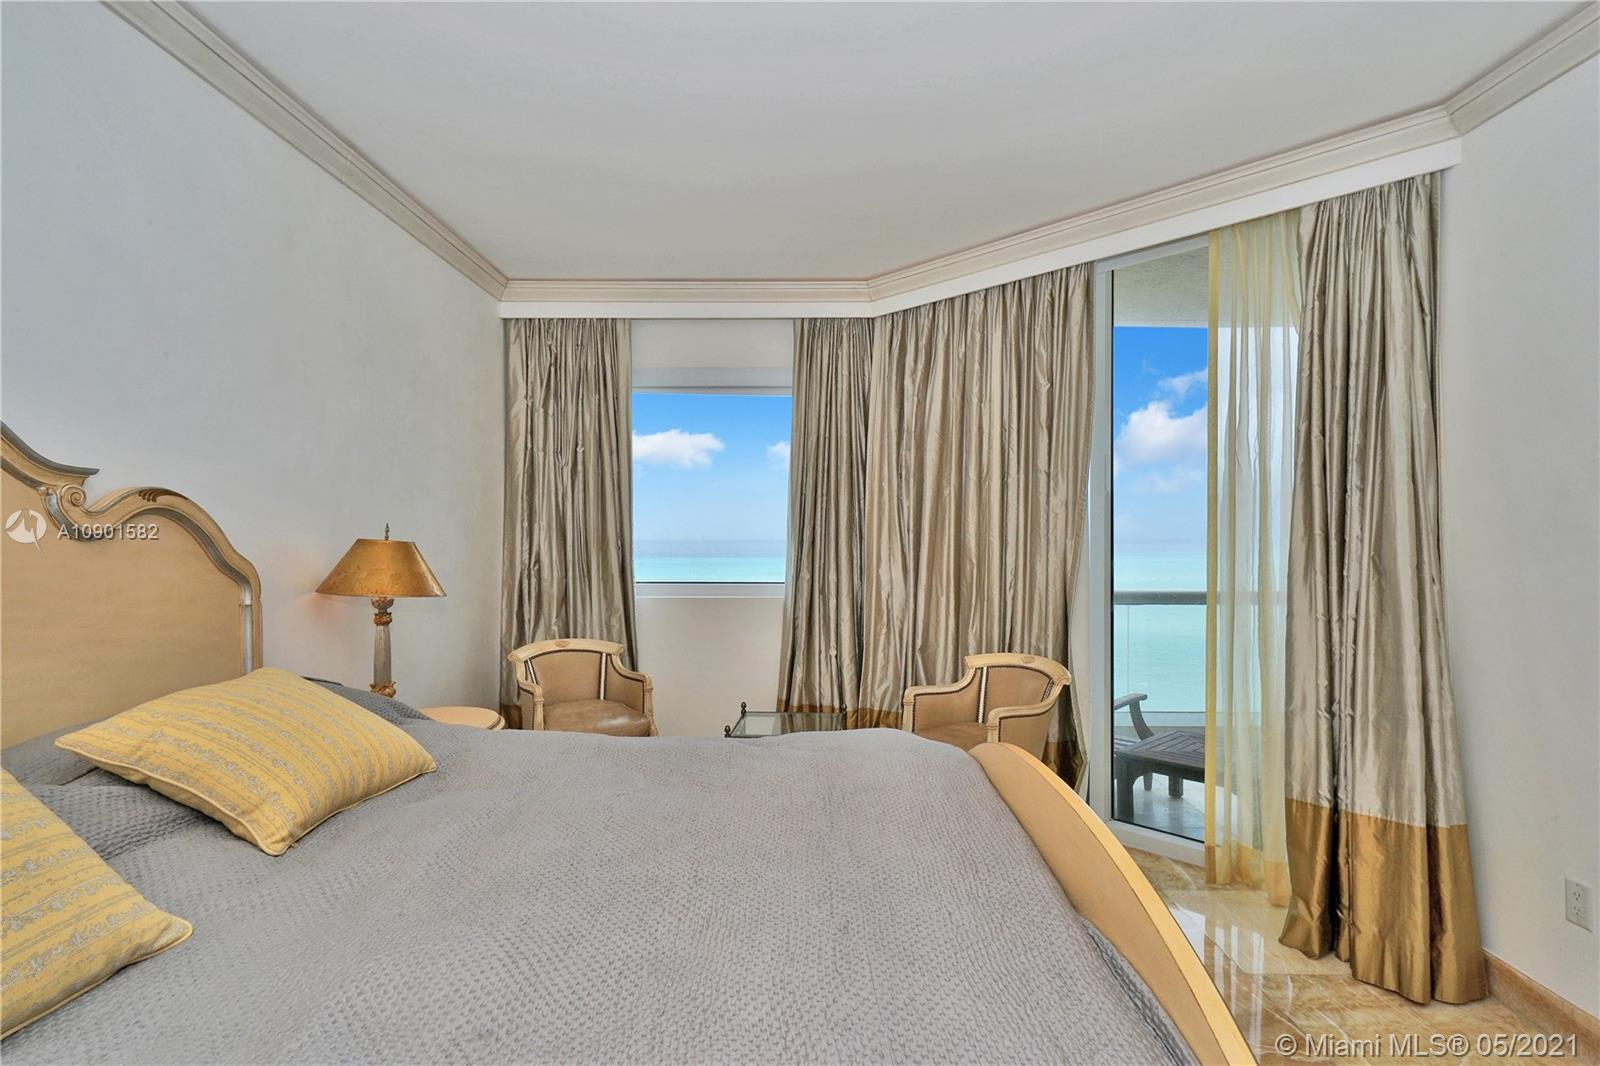 17875 Collins Ave #3605 Property Photo